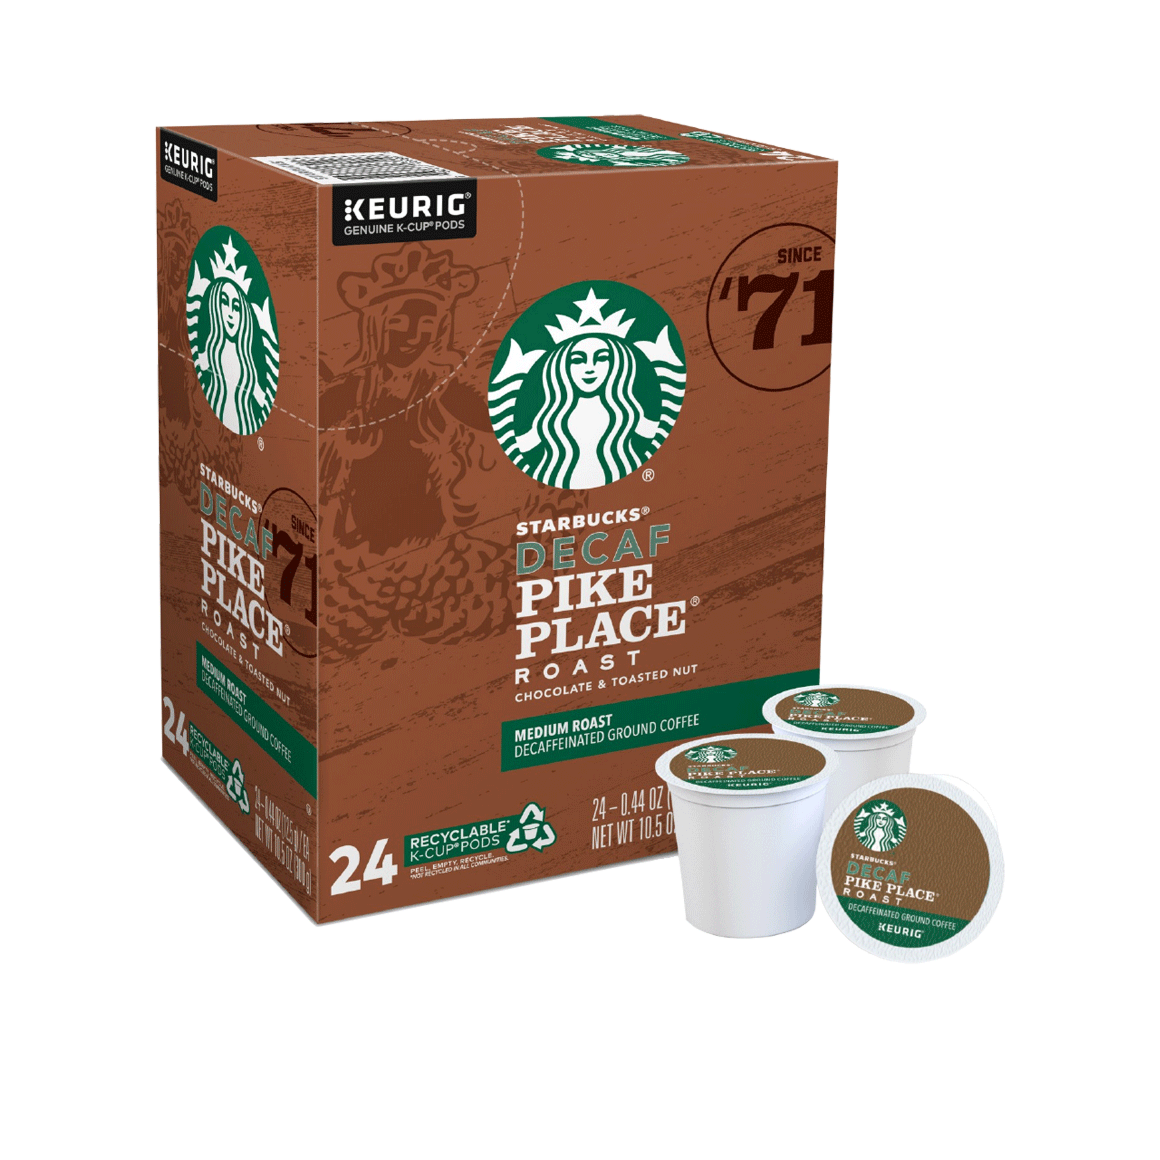 starbucks k cups decaf pike place 24 pack single serve coffee pods